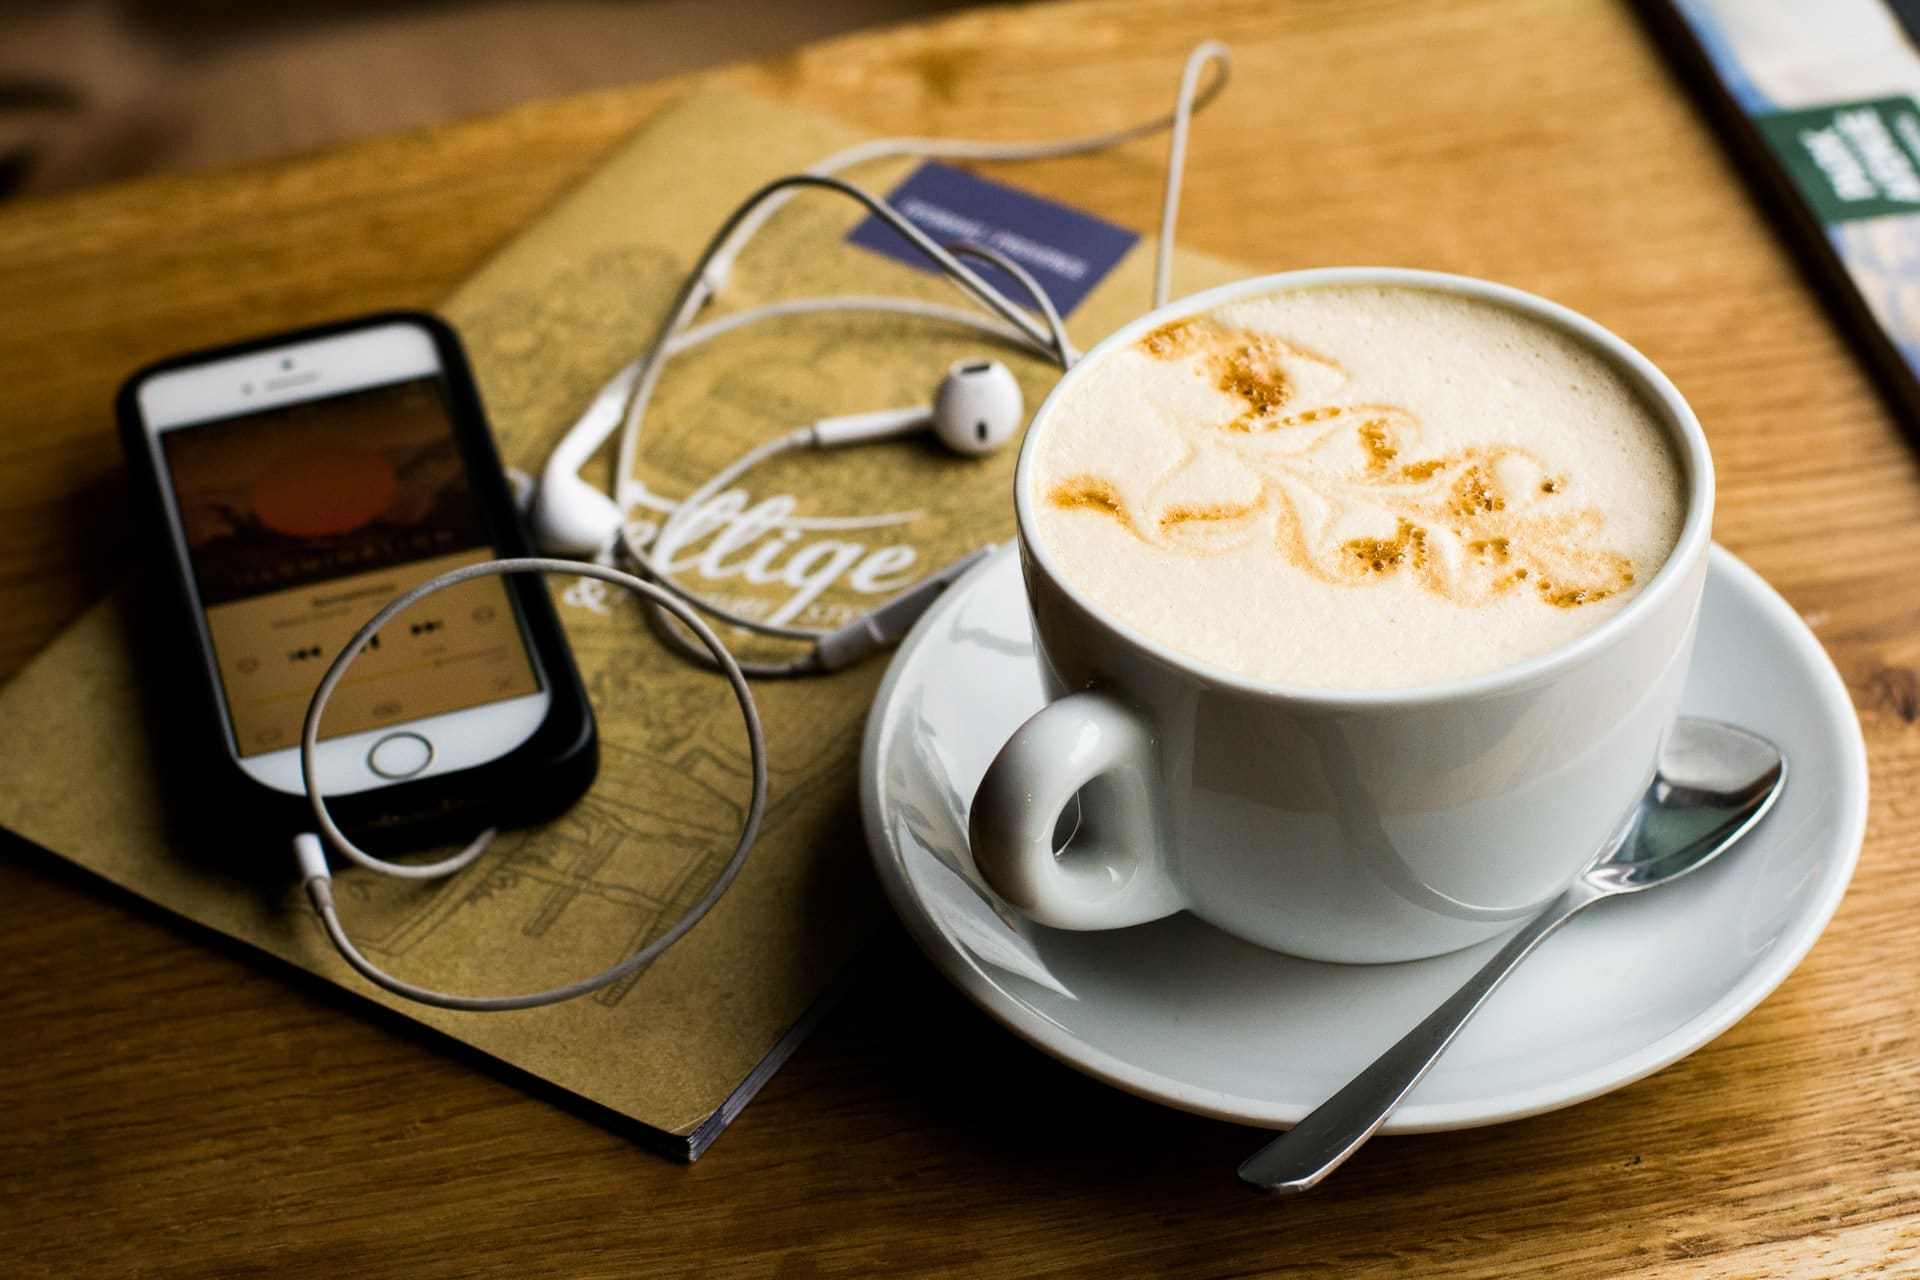 A cup of cappuccino on a table with a smartphone and earplugs